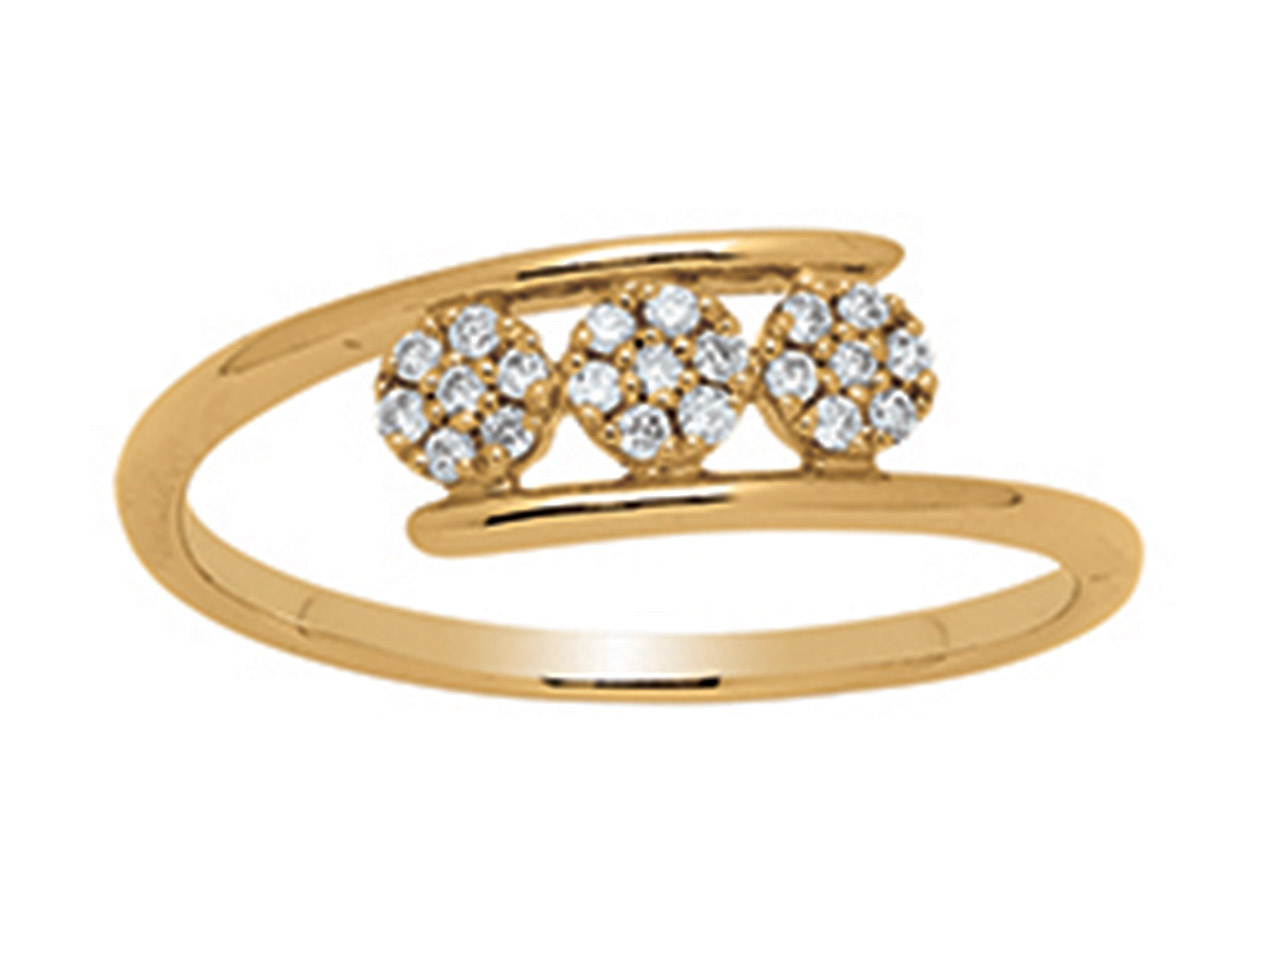 Bague Trilogie Solitaire serti illusion, Or jaune 18k, diamants 0,09ct, doigt 56